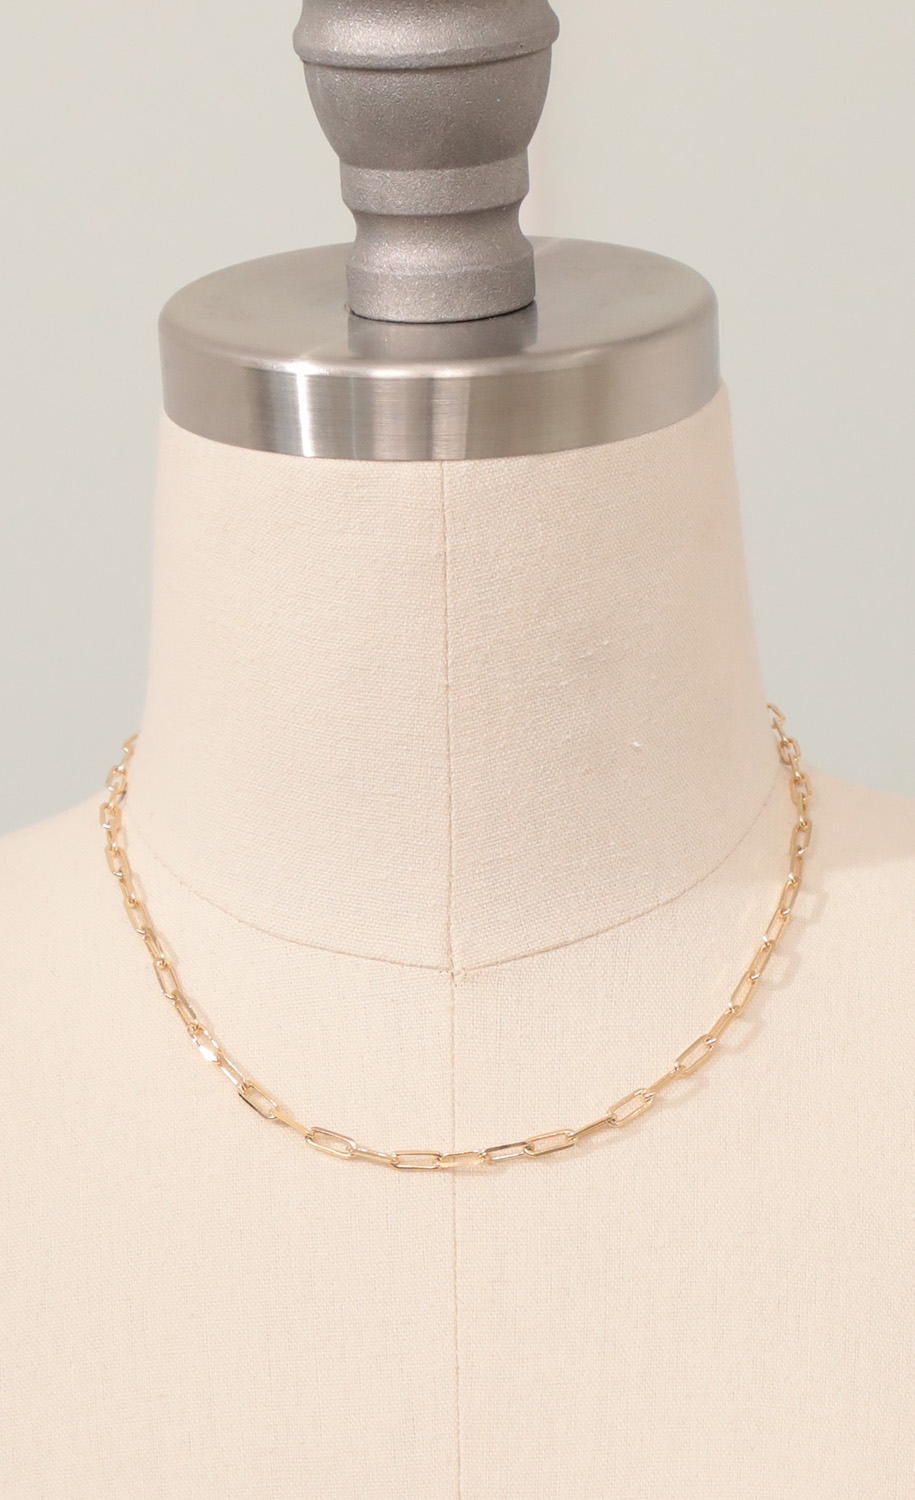 Square Link Chain Necklace in Gold